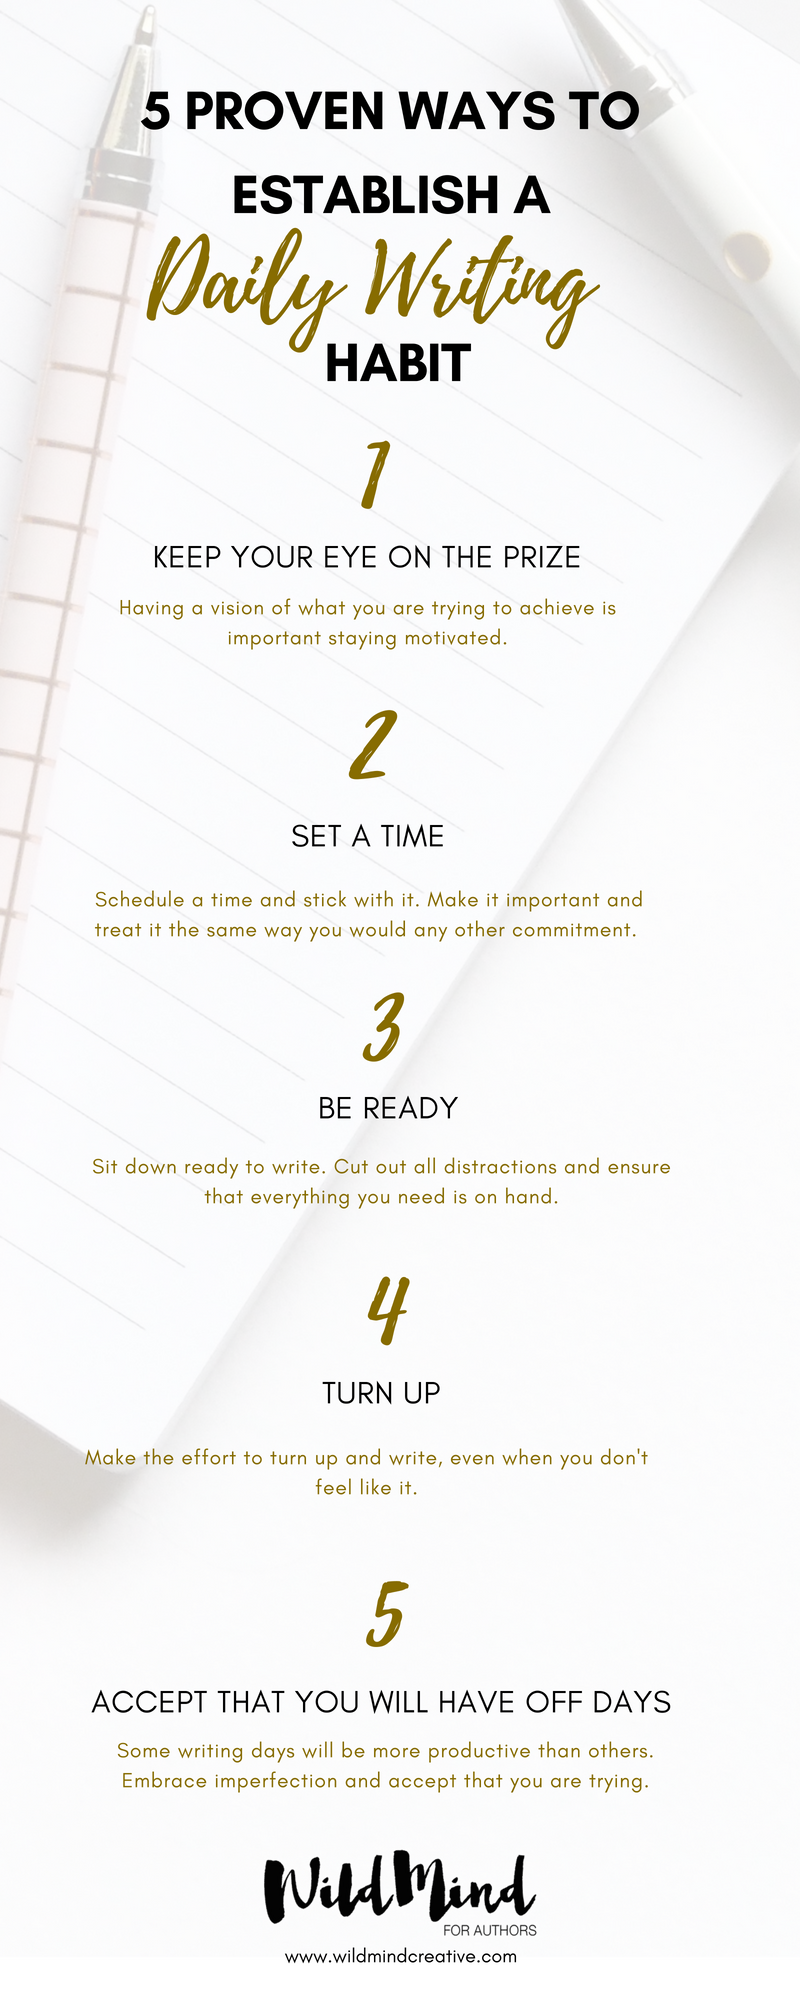 5 Proven Ways to Establish a Daily Writing Habit - Infographic by WildMind Creative